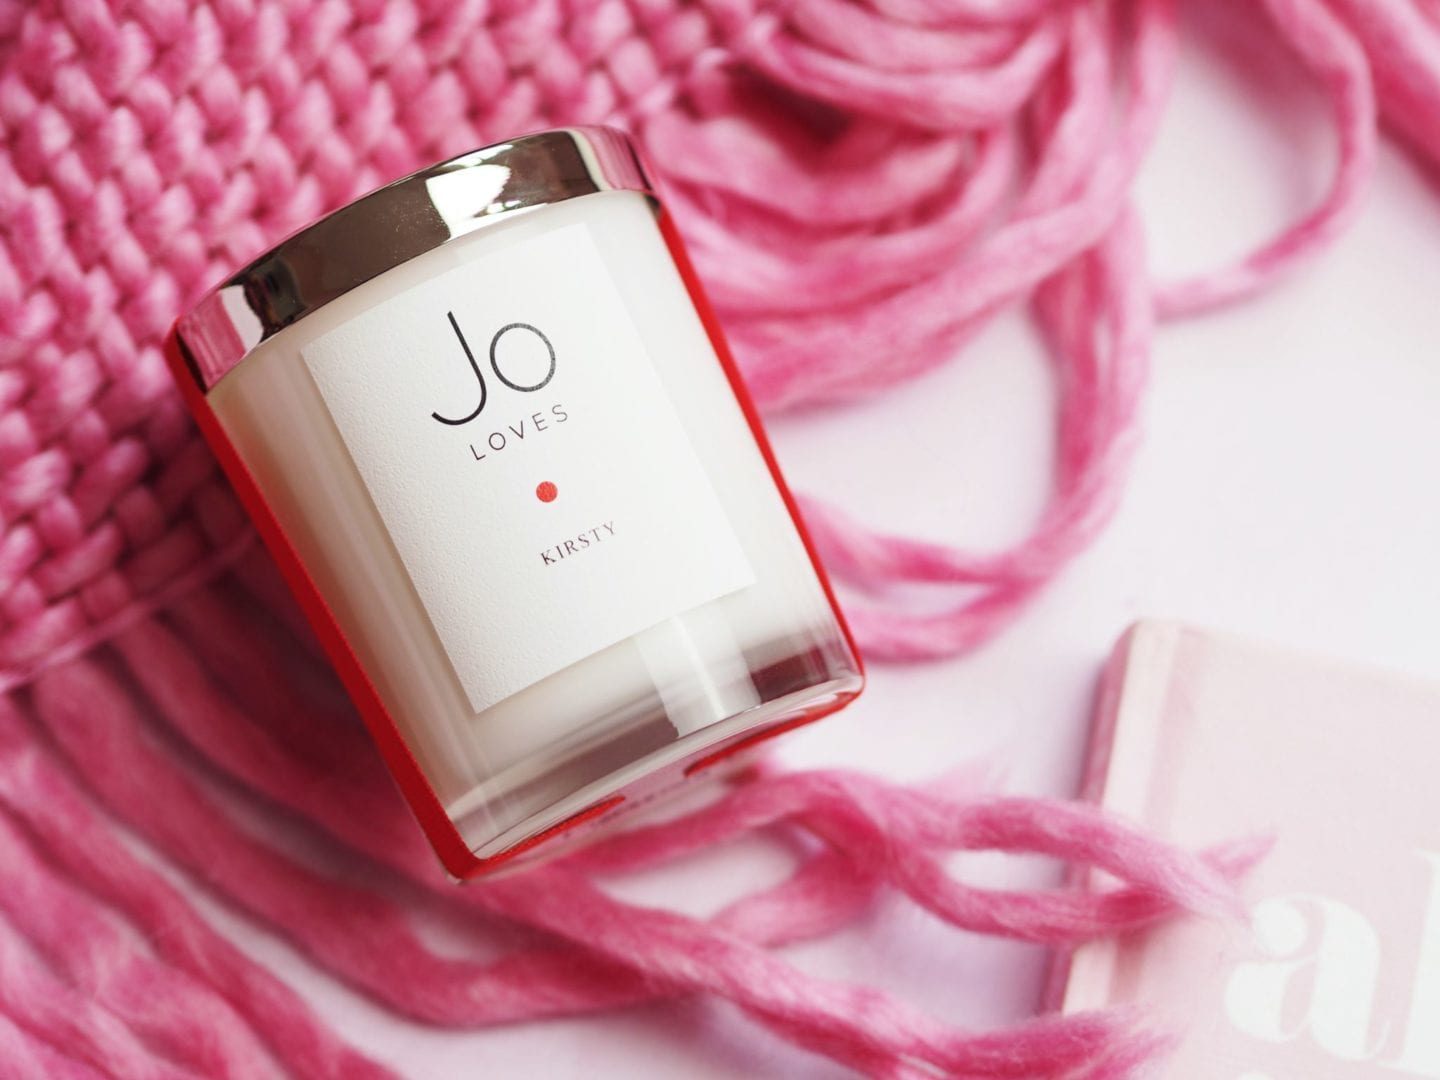 jo-love-personalised-candle